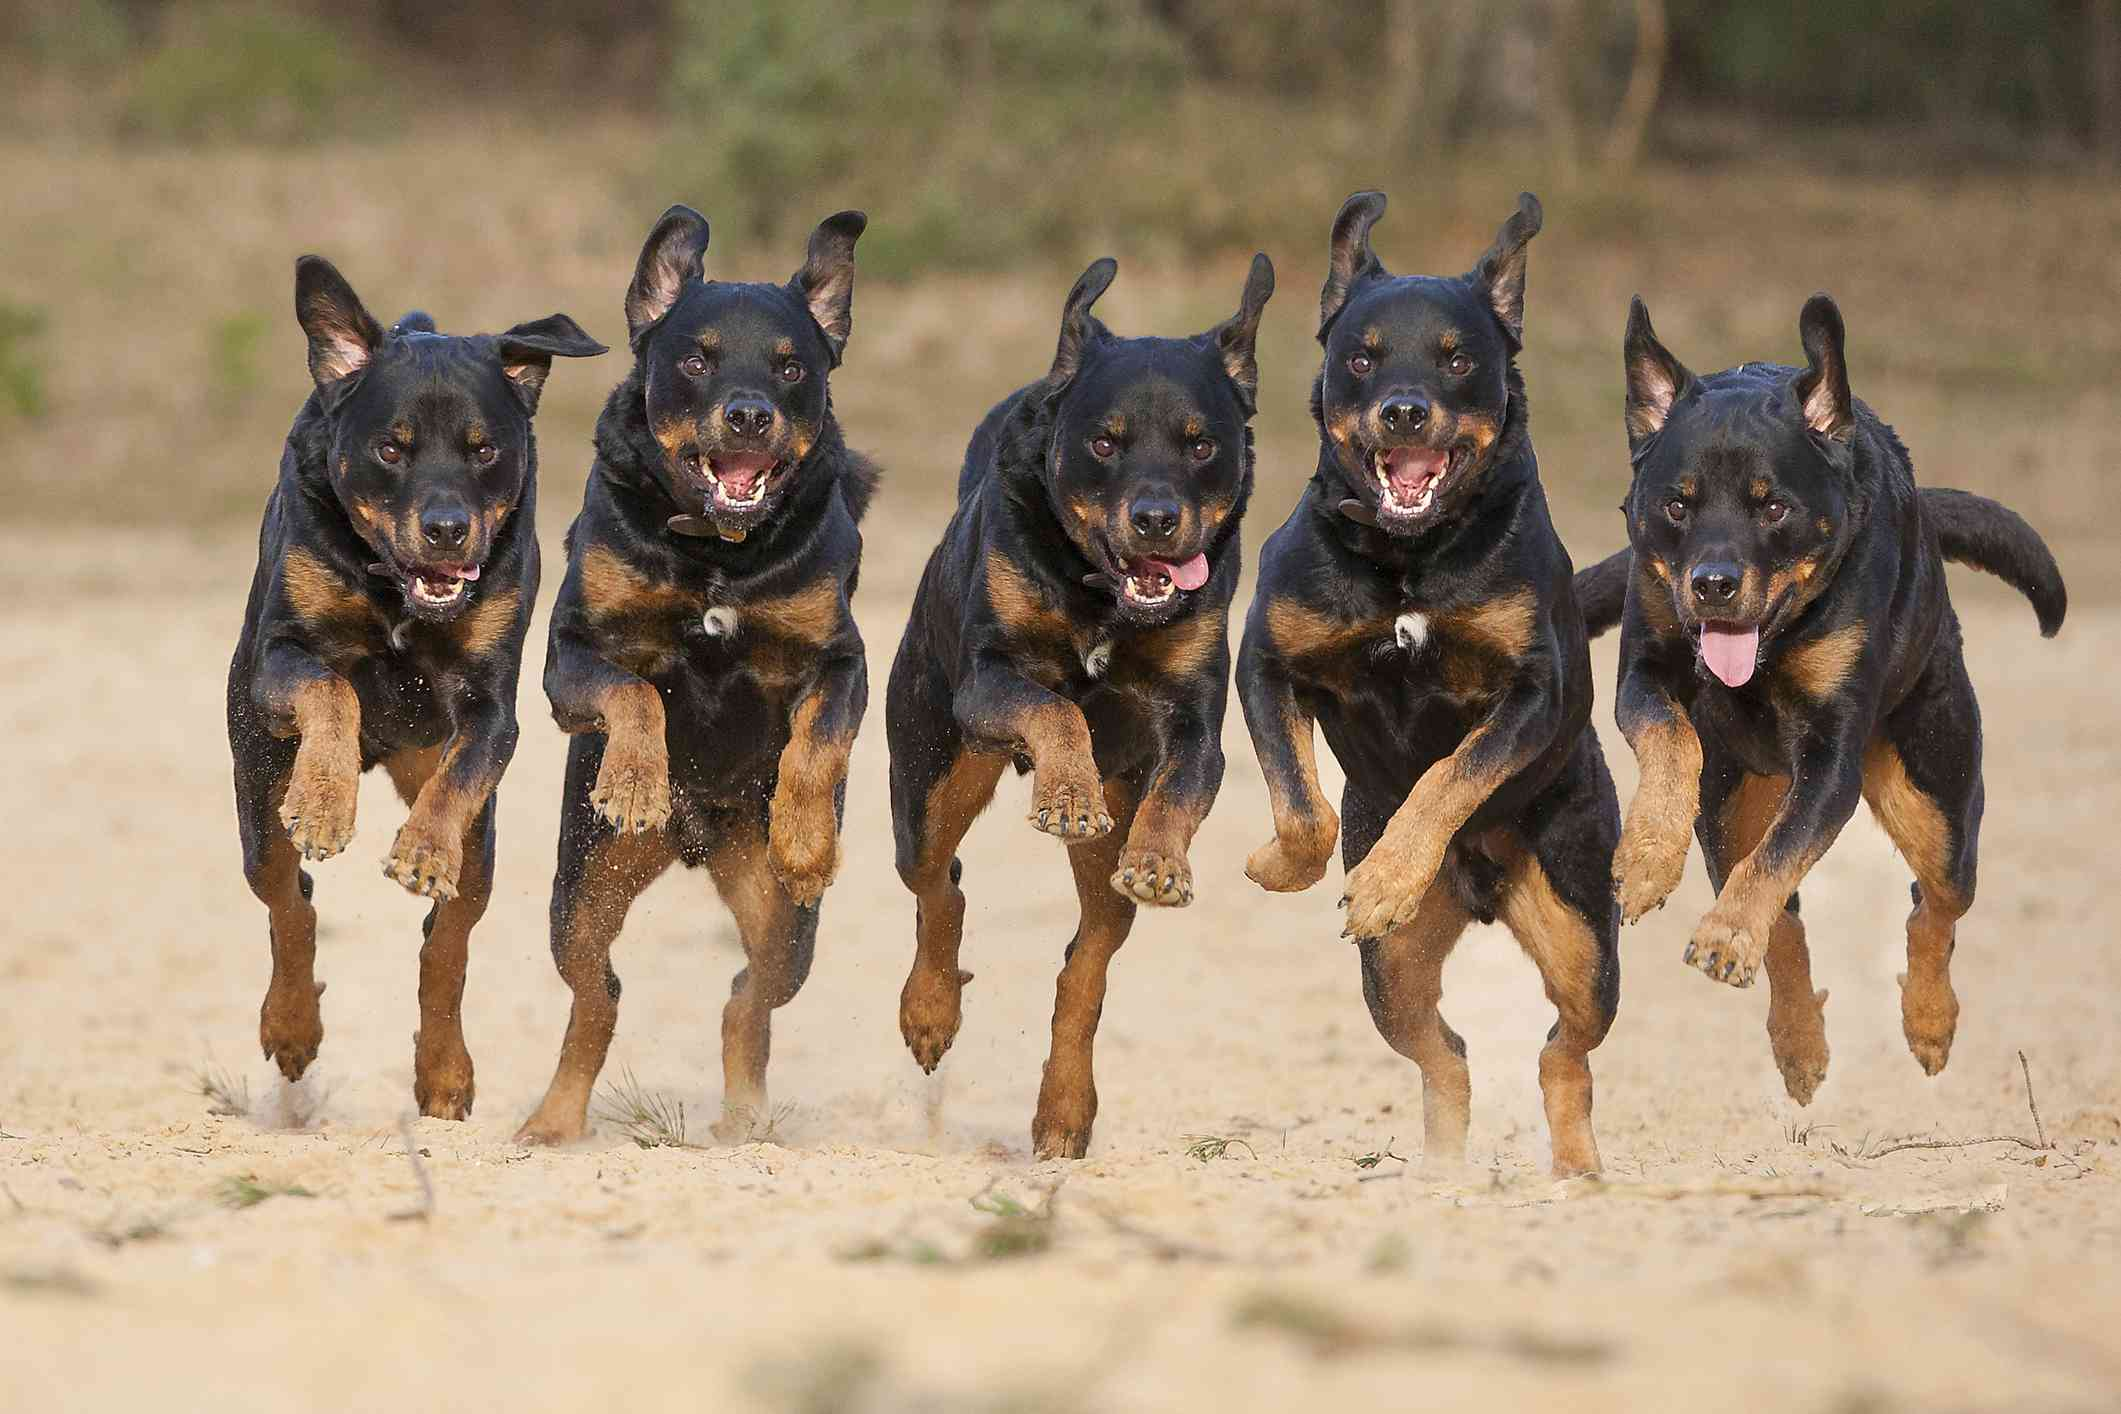 five rottweilers in a row running on beach with mouths open